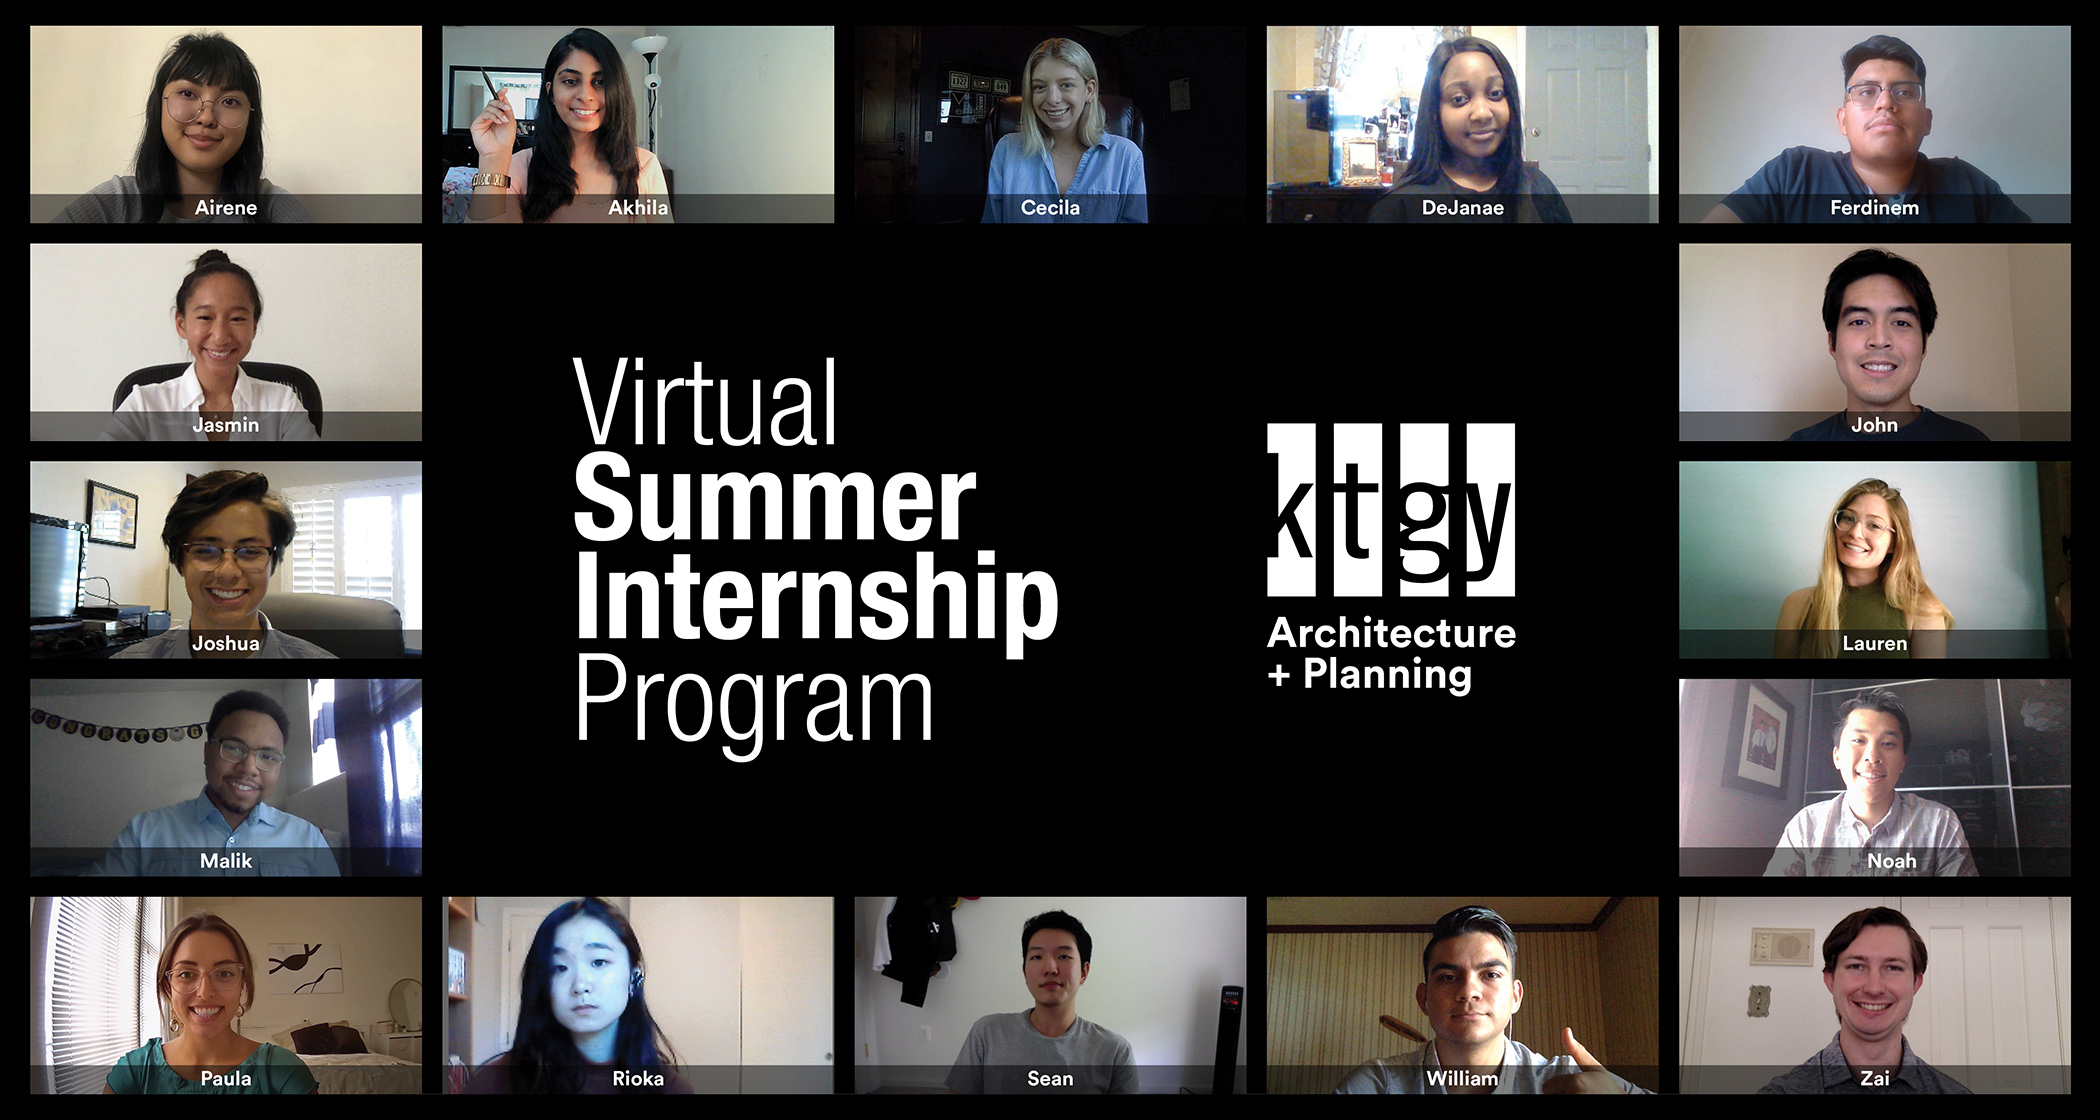 KTGY Architecture + Planning Wishes Summer Interns Best of Luck as the Firm's Inaugural Virtual Summer Internship Program Wraps-Up